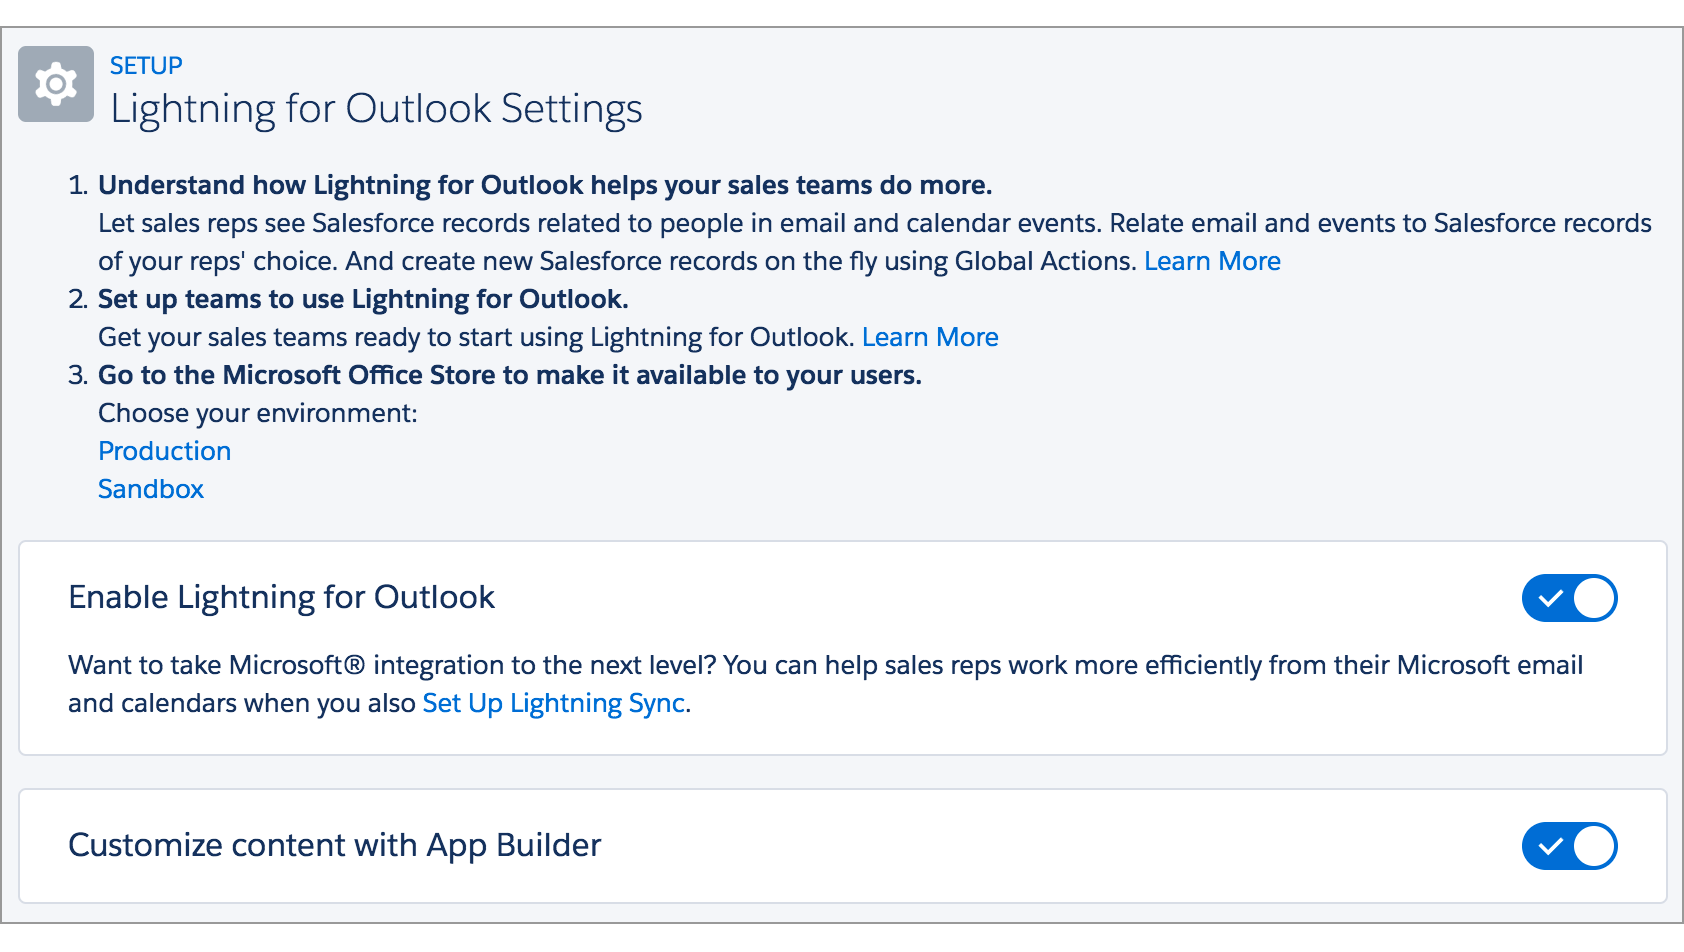 enable_lightning_for_outlook.png